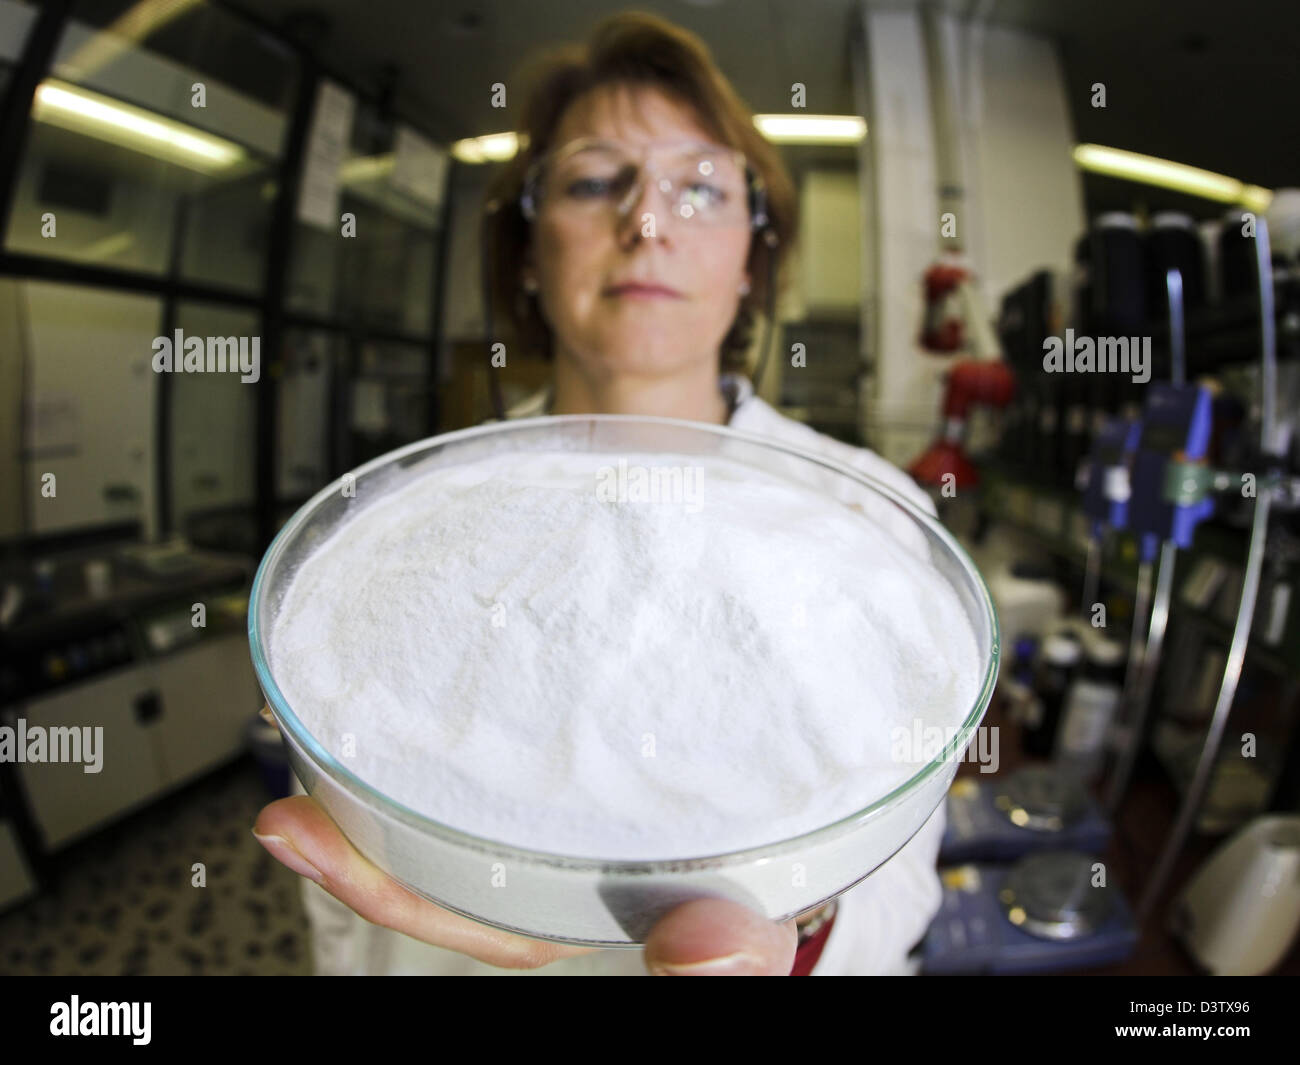 A chemist presents a cup of Aerosil R 812 S powder in the